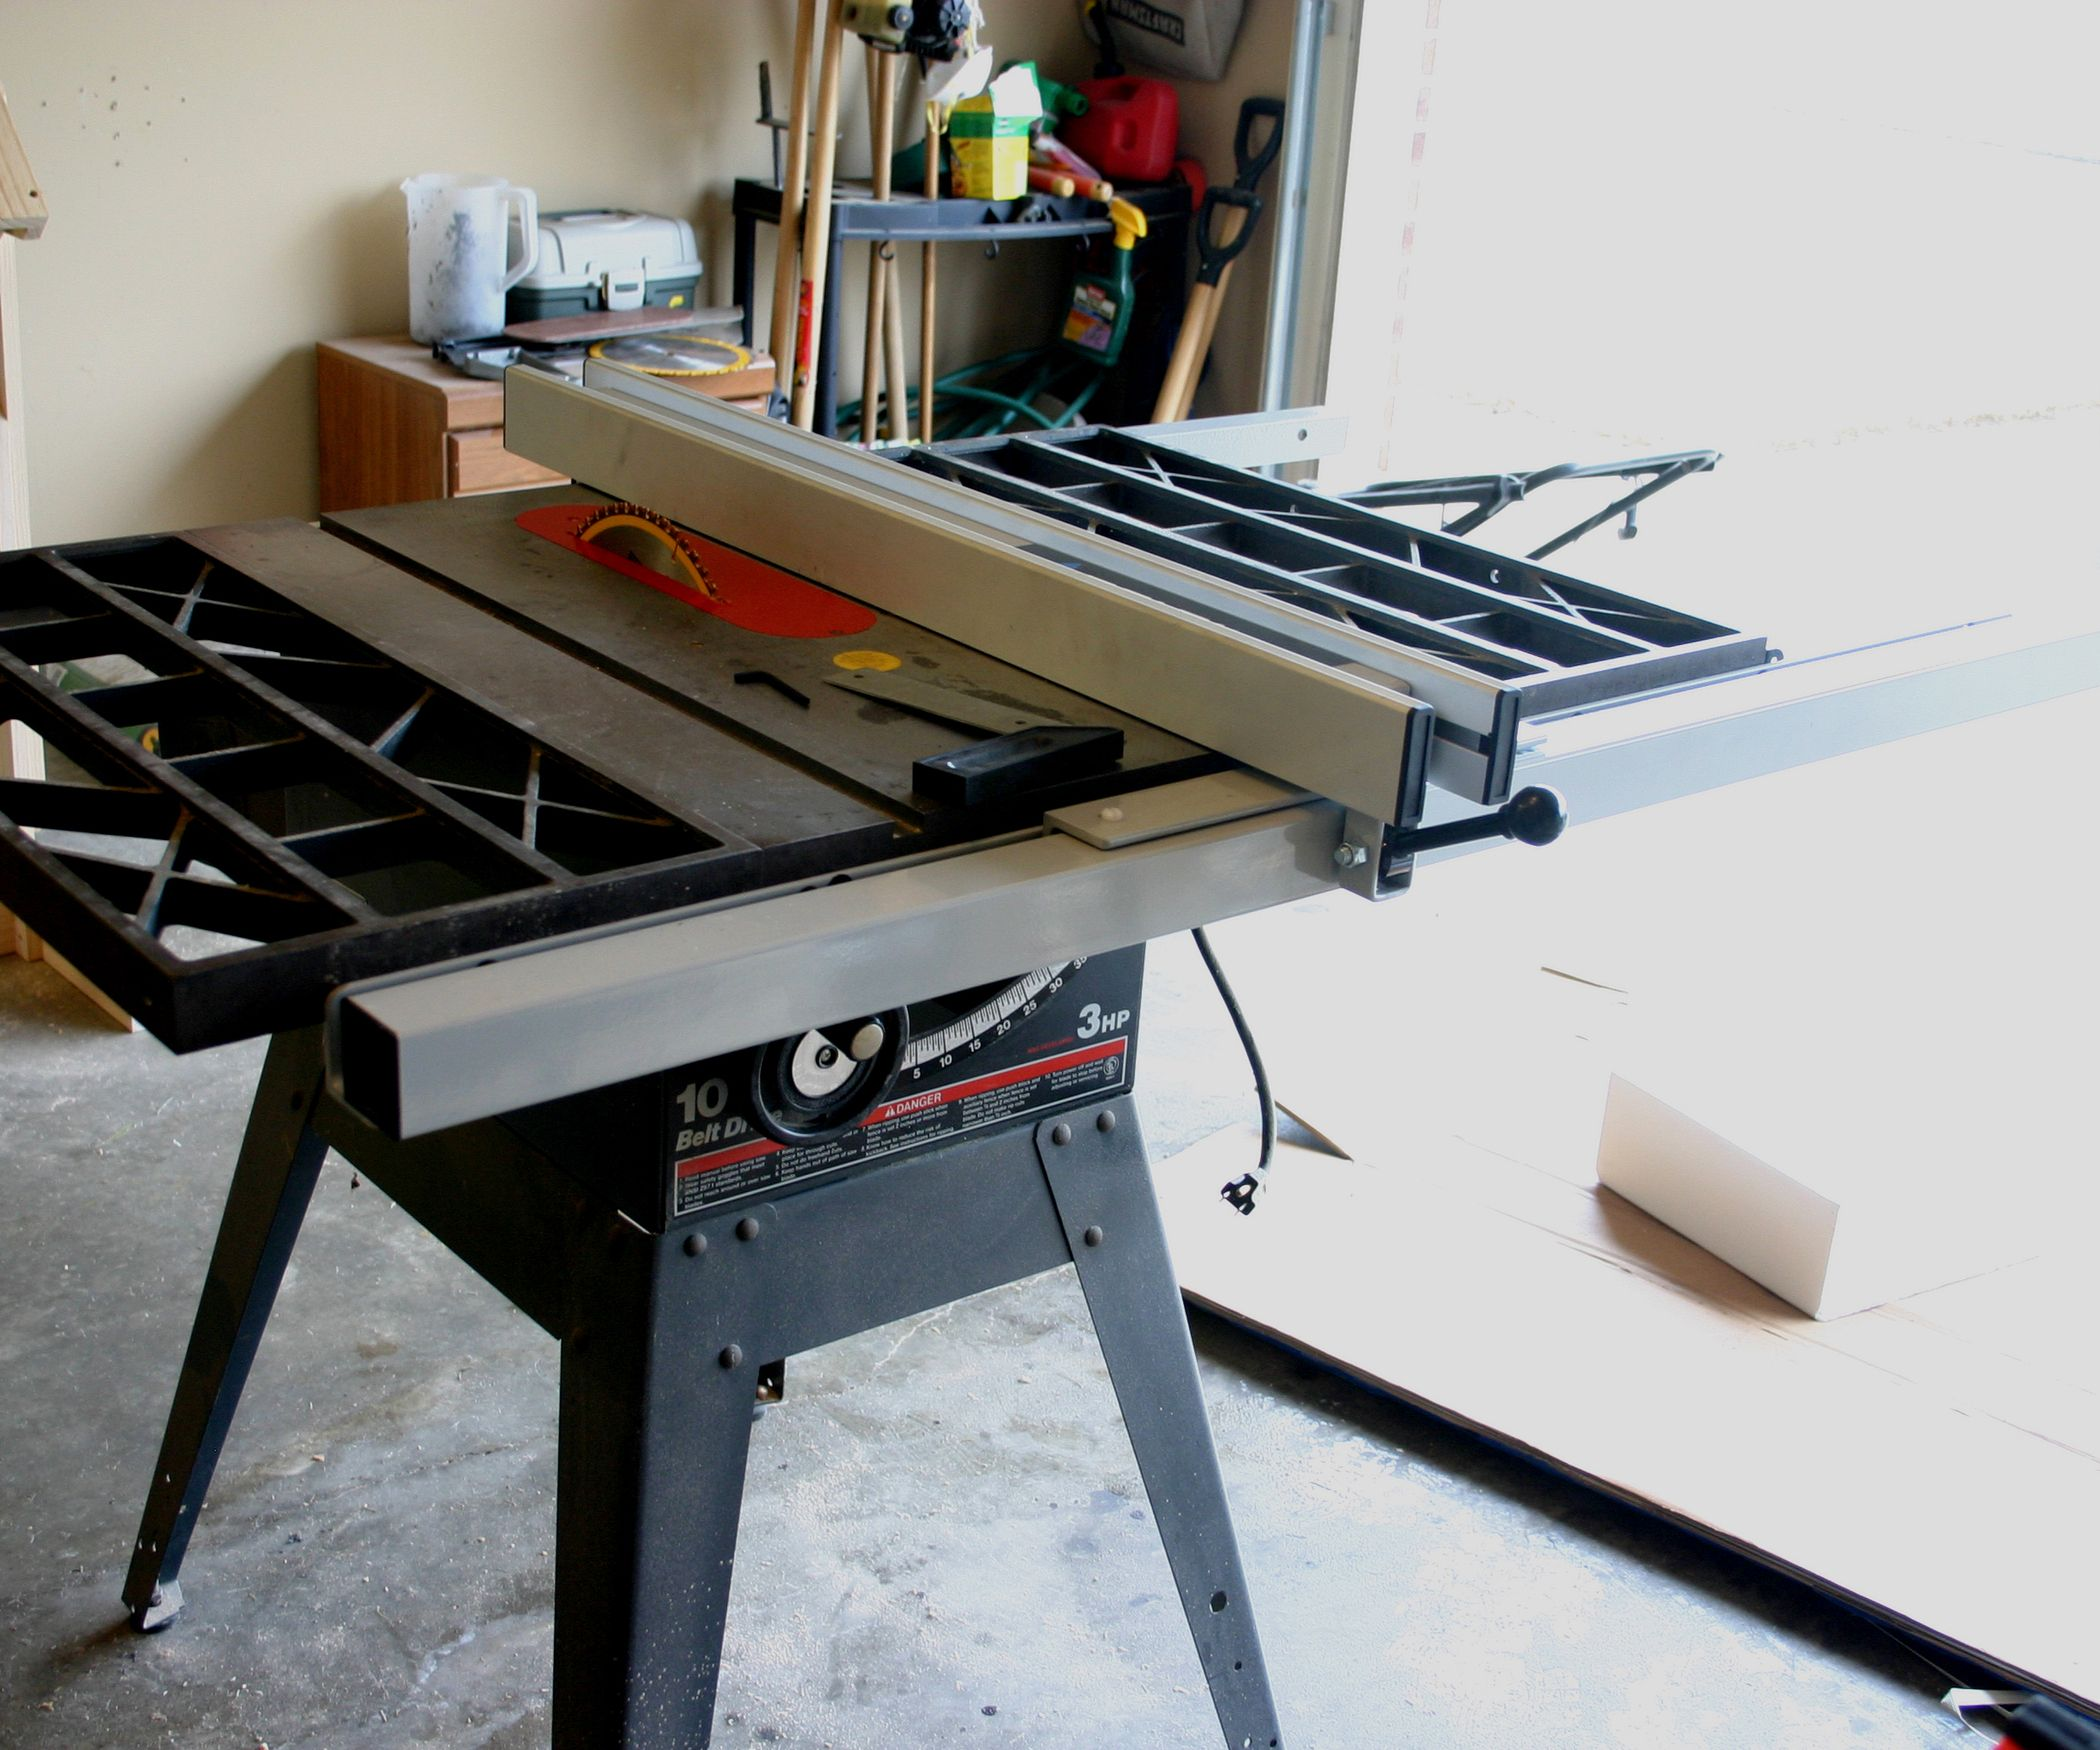 Retrofitting A Delta T2 Fence To A Craftsman Table Saw Craftsman